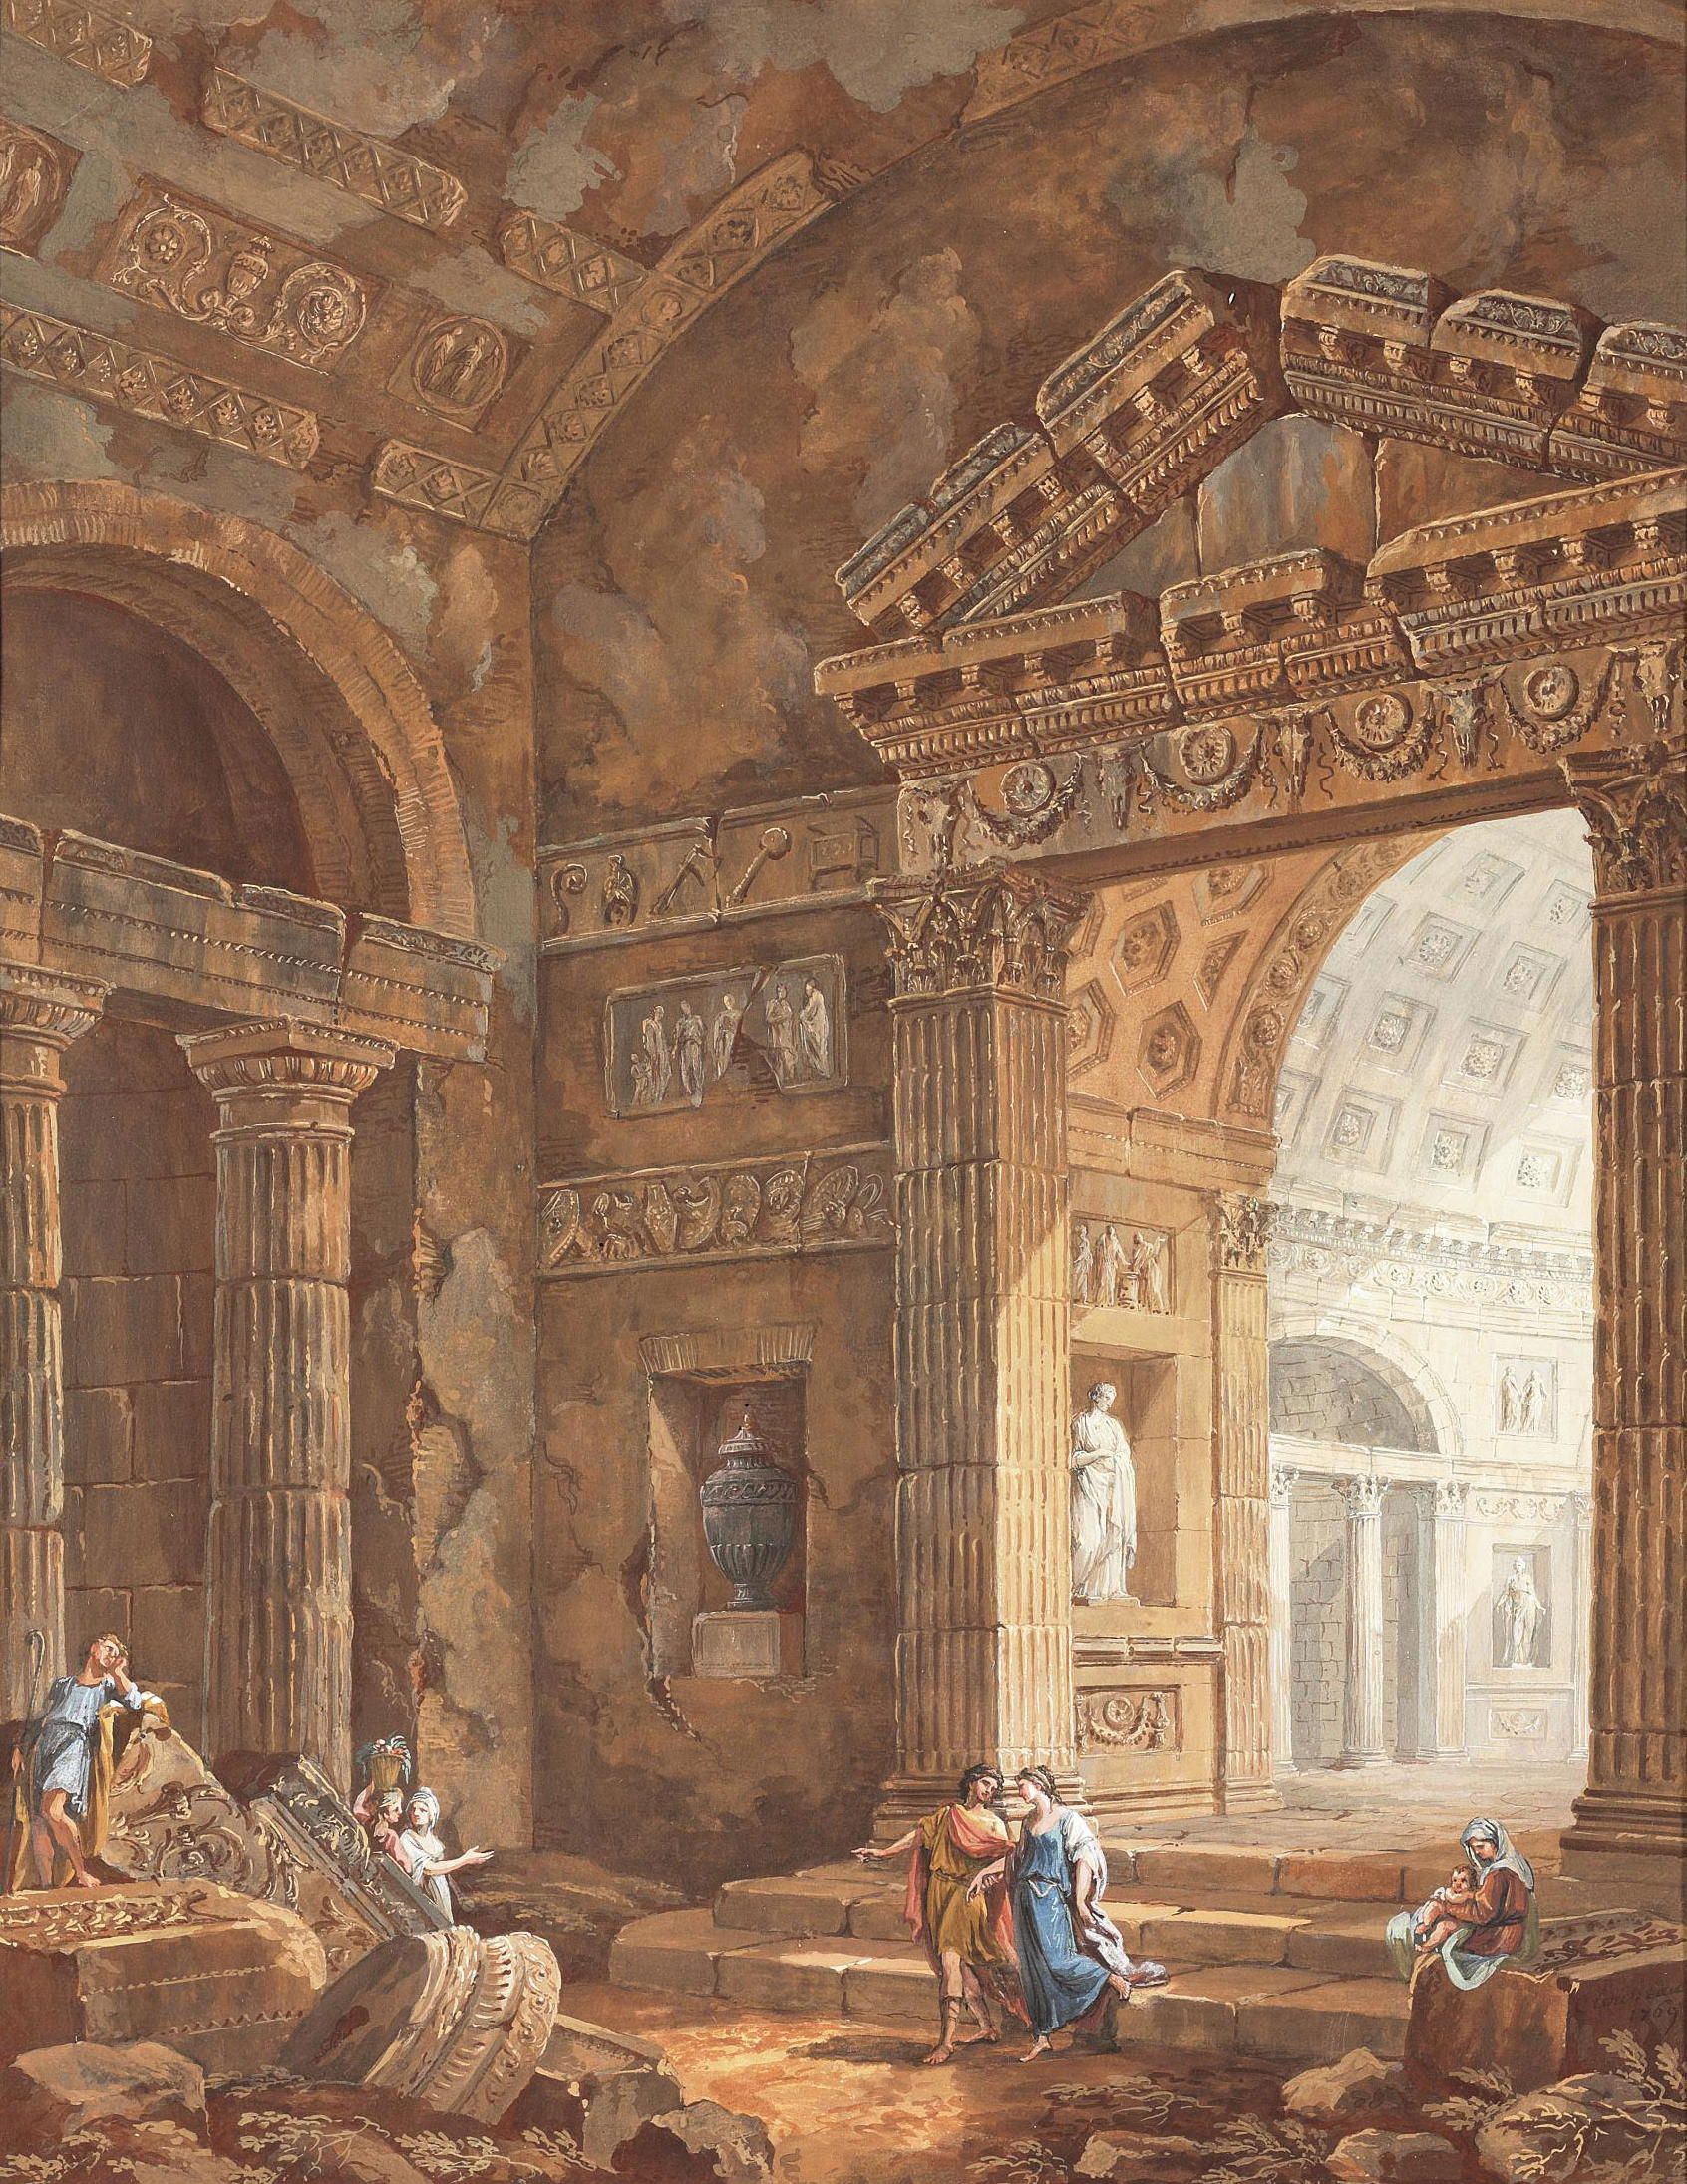 Interior of a Roman basilica with figures #1